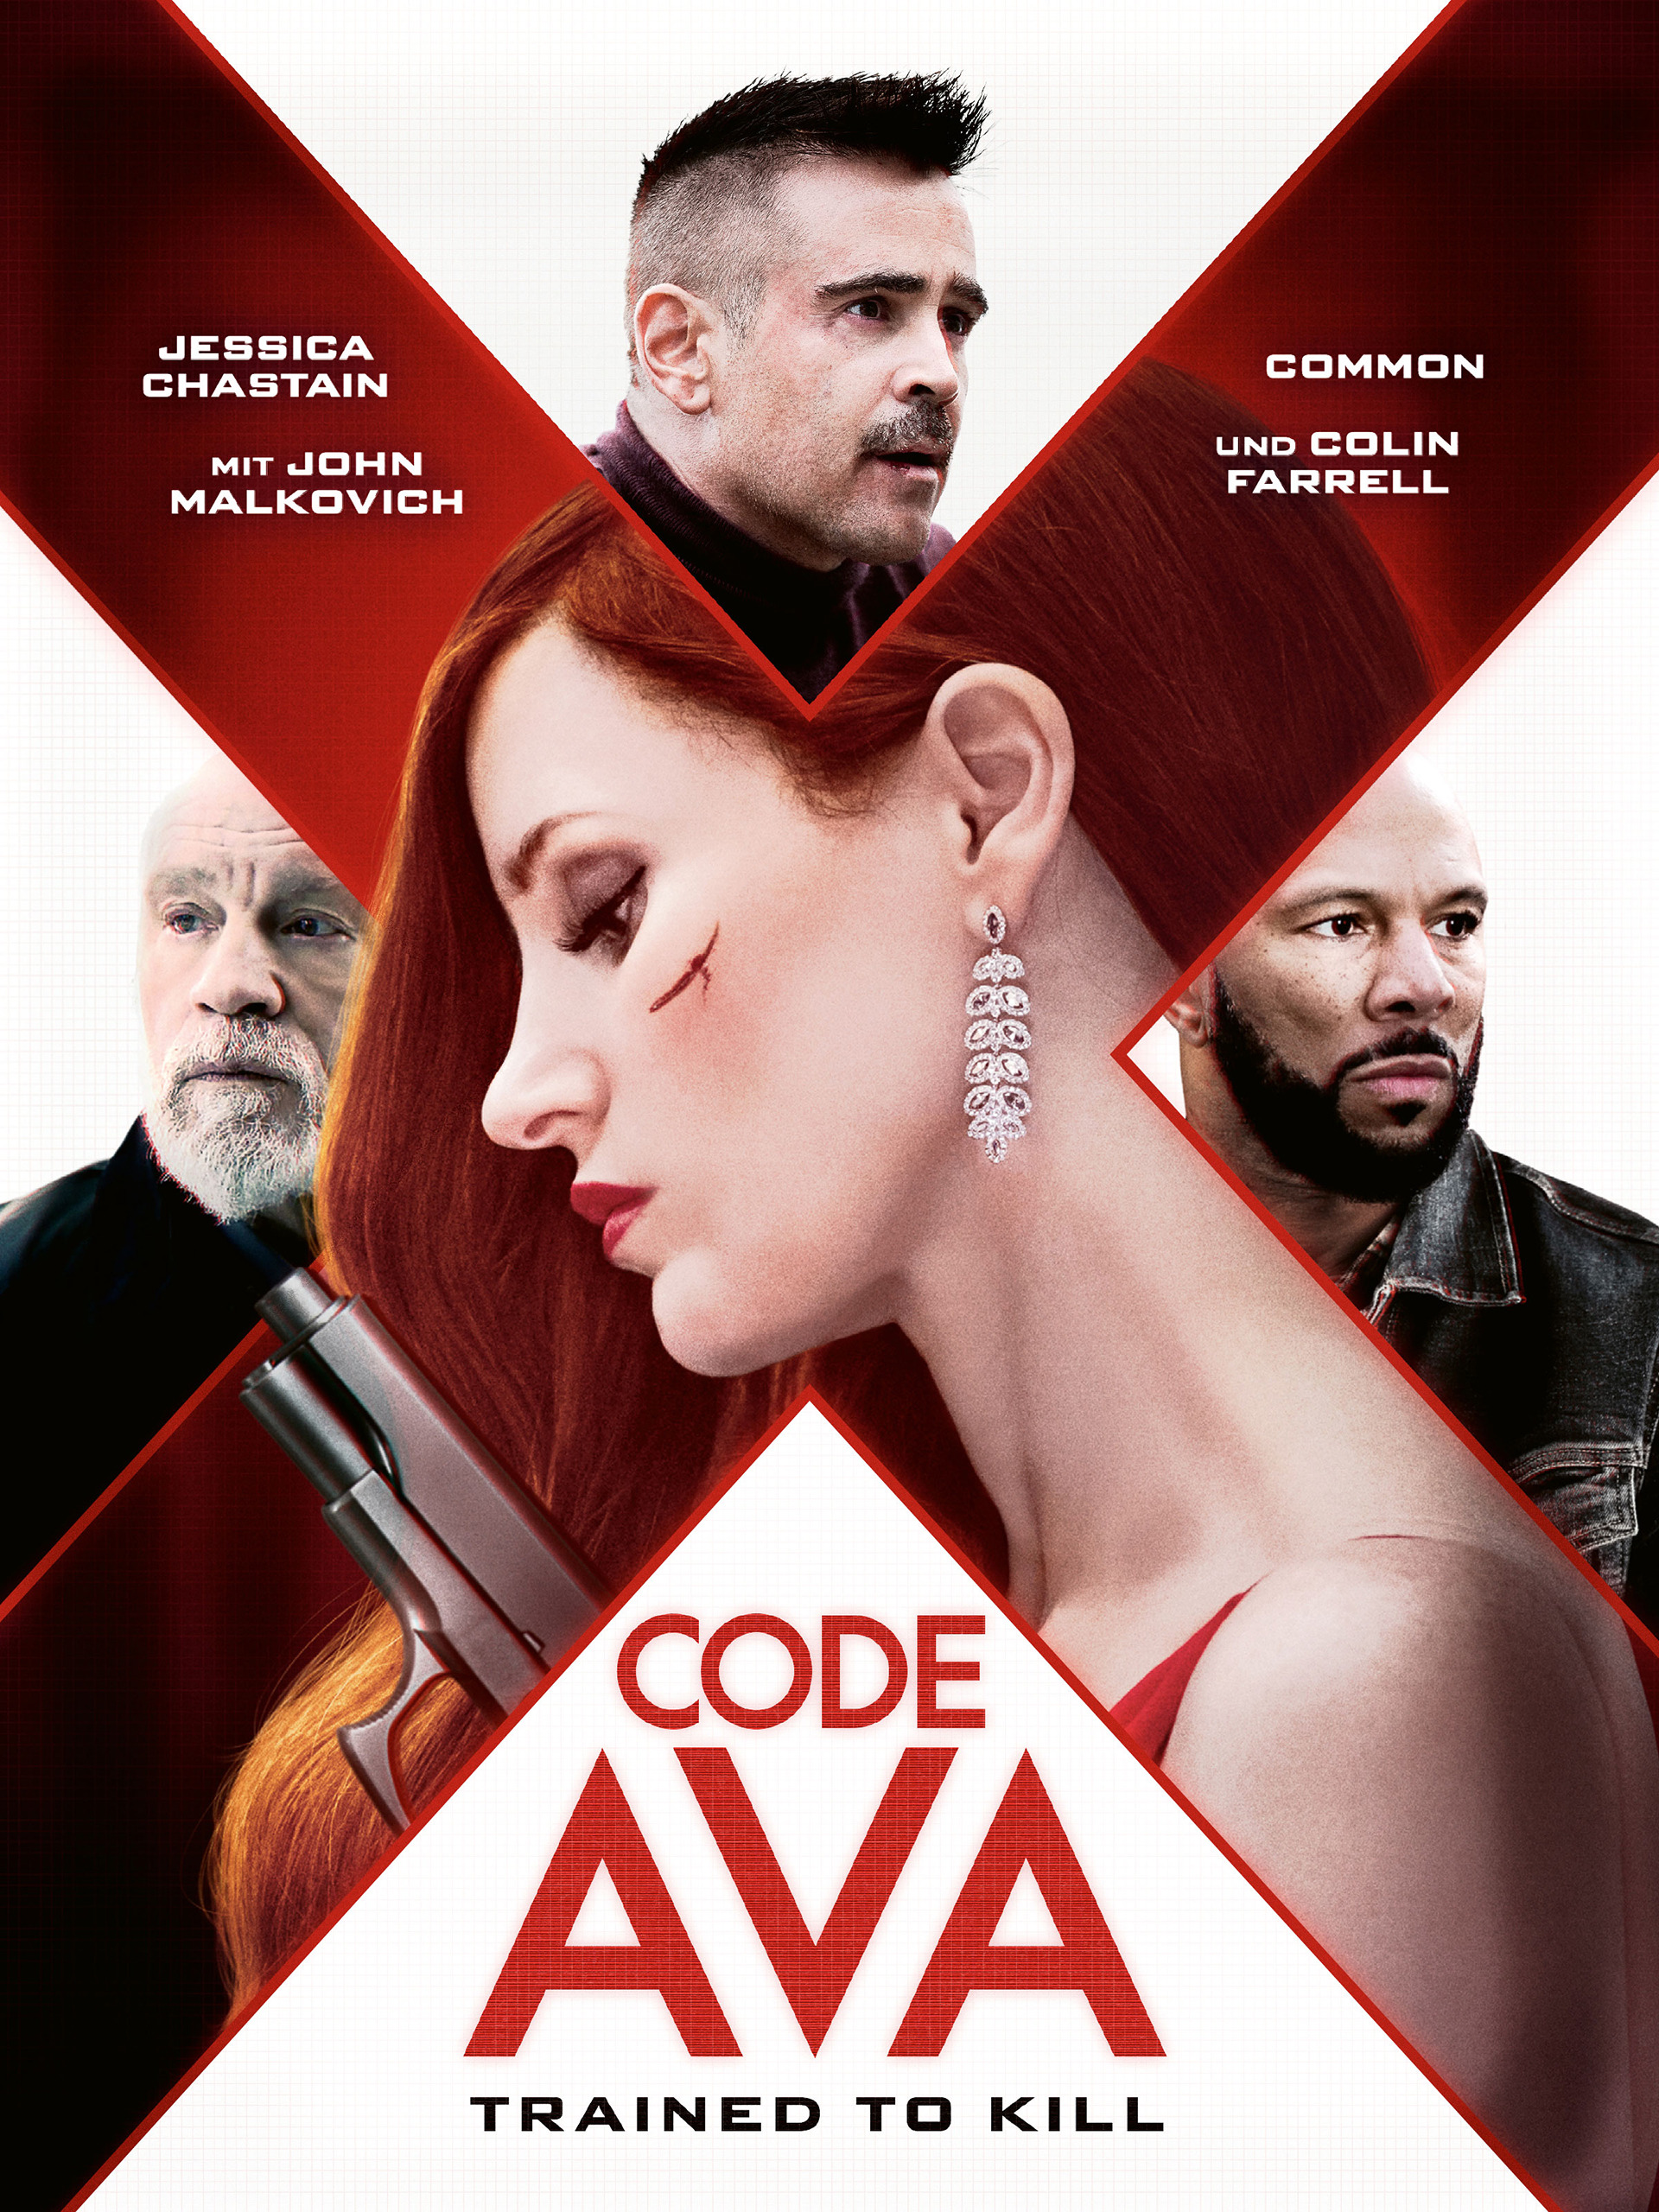 Code Ava - Trained to kill